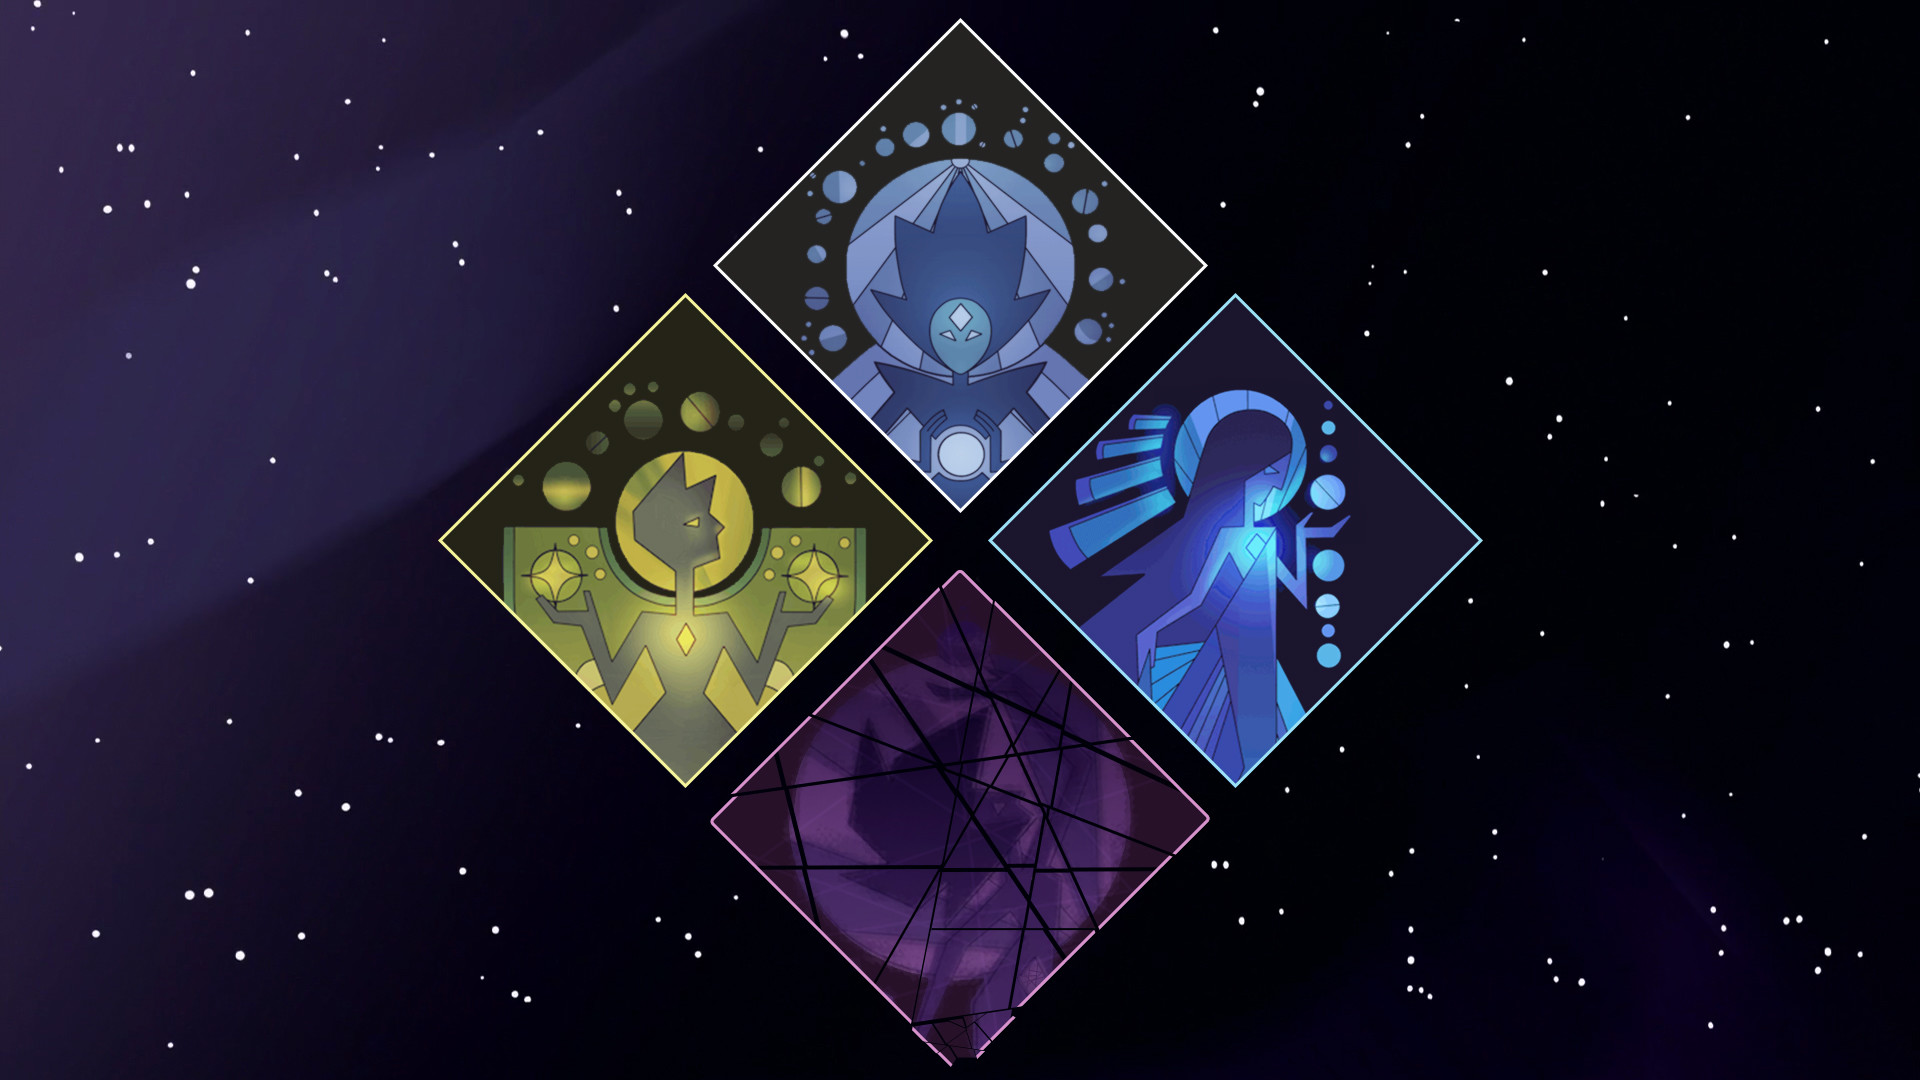 I made a background using The Diamond Authority's murals within their  symbol.